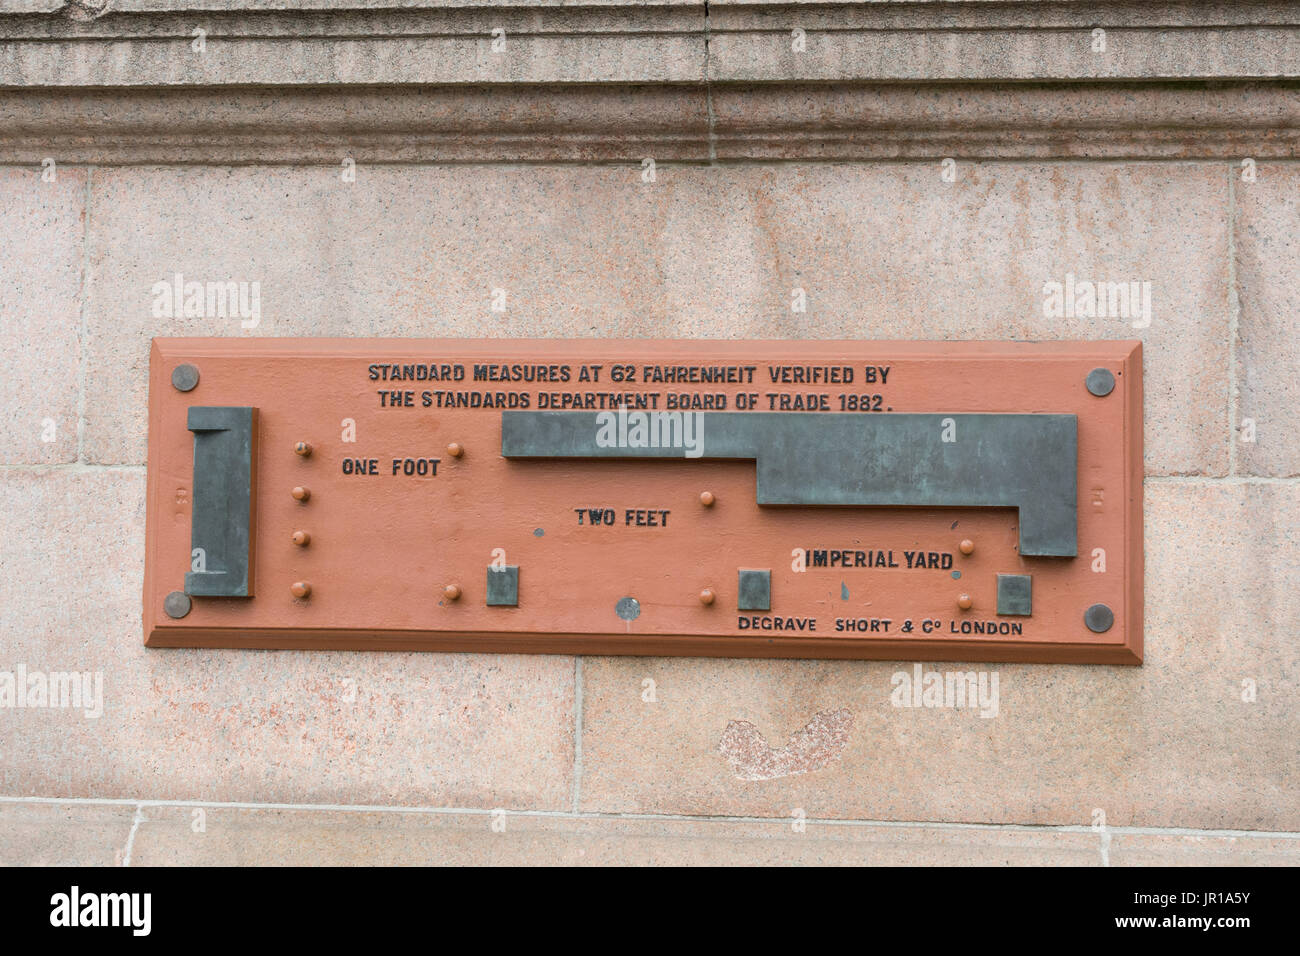 Standard Measure indicator, Glasgow City Chambers, Glasgow, Scotland, UK - Stock Image